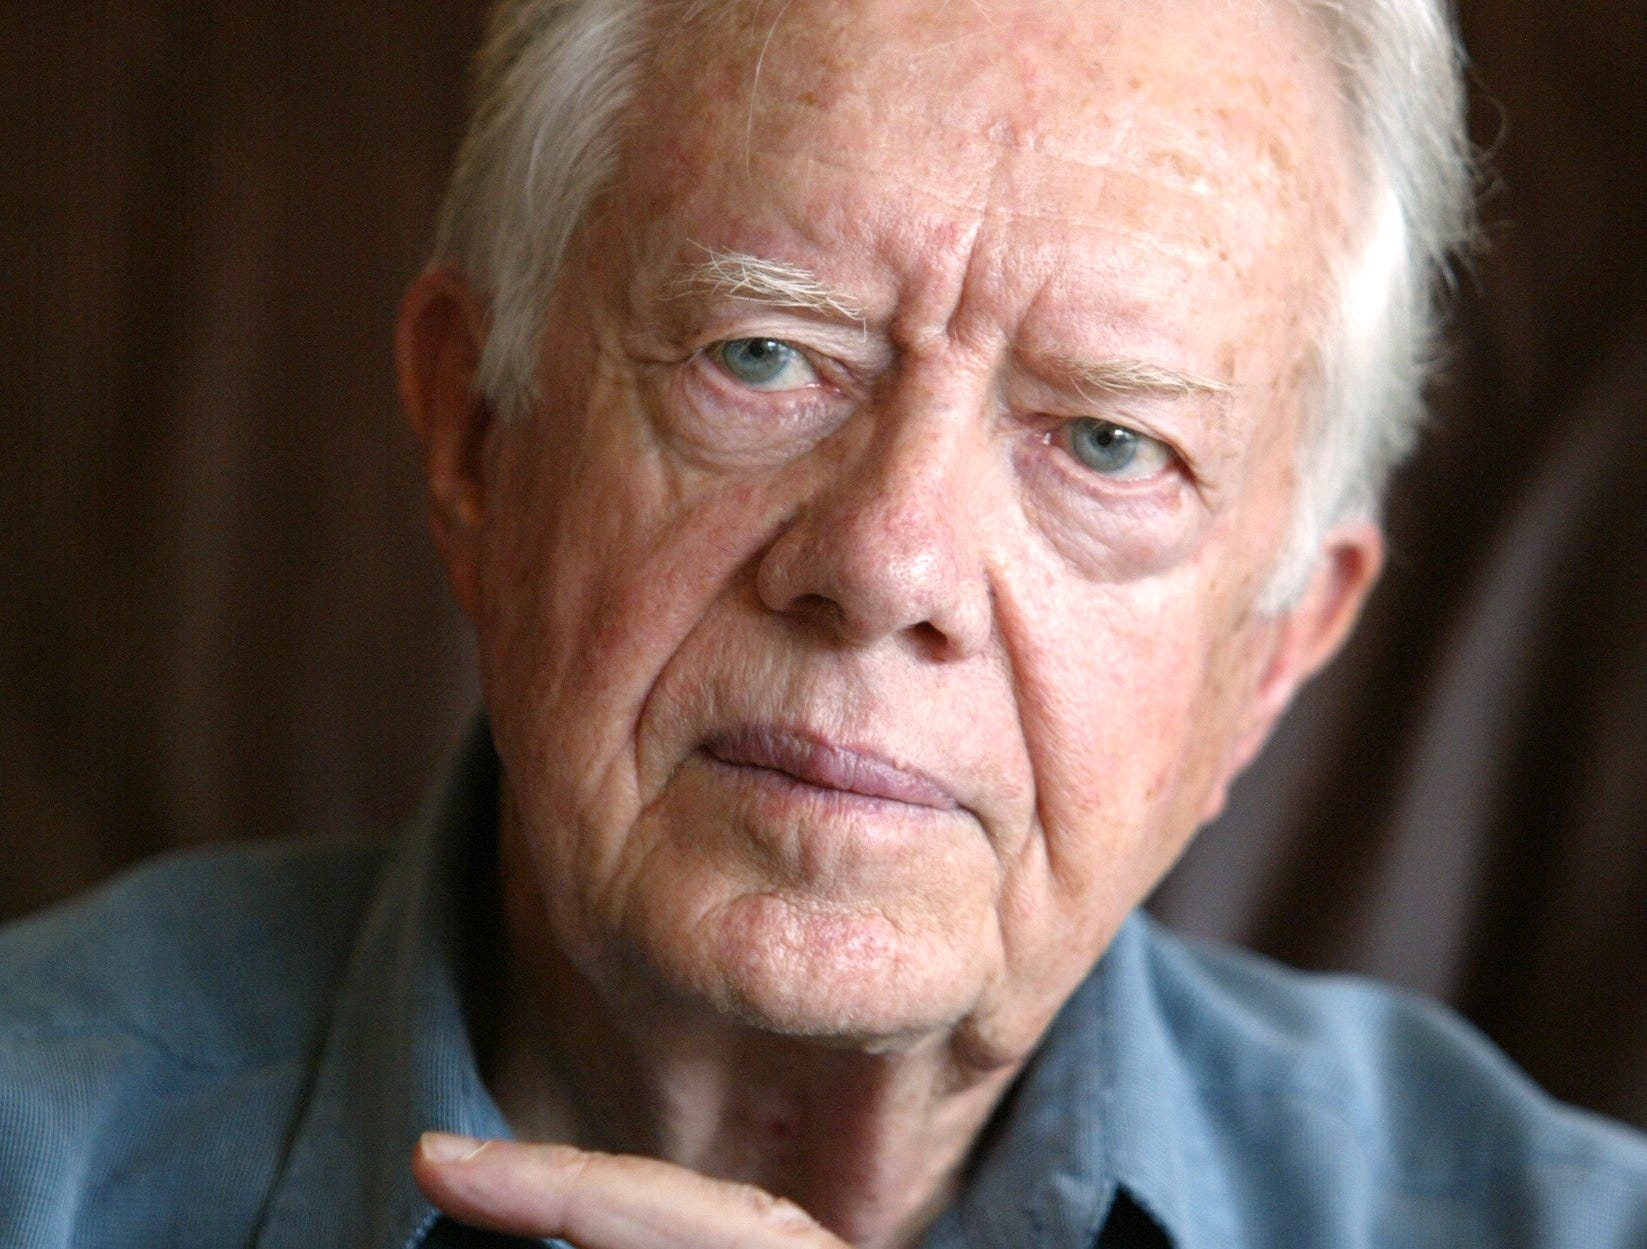 Jimmy Carter during an interview in Plains, Ga. on Sept. 28, 2002.